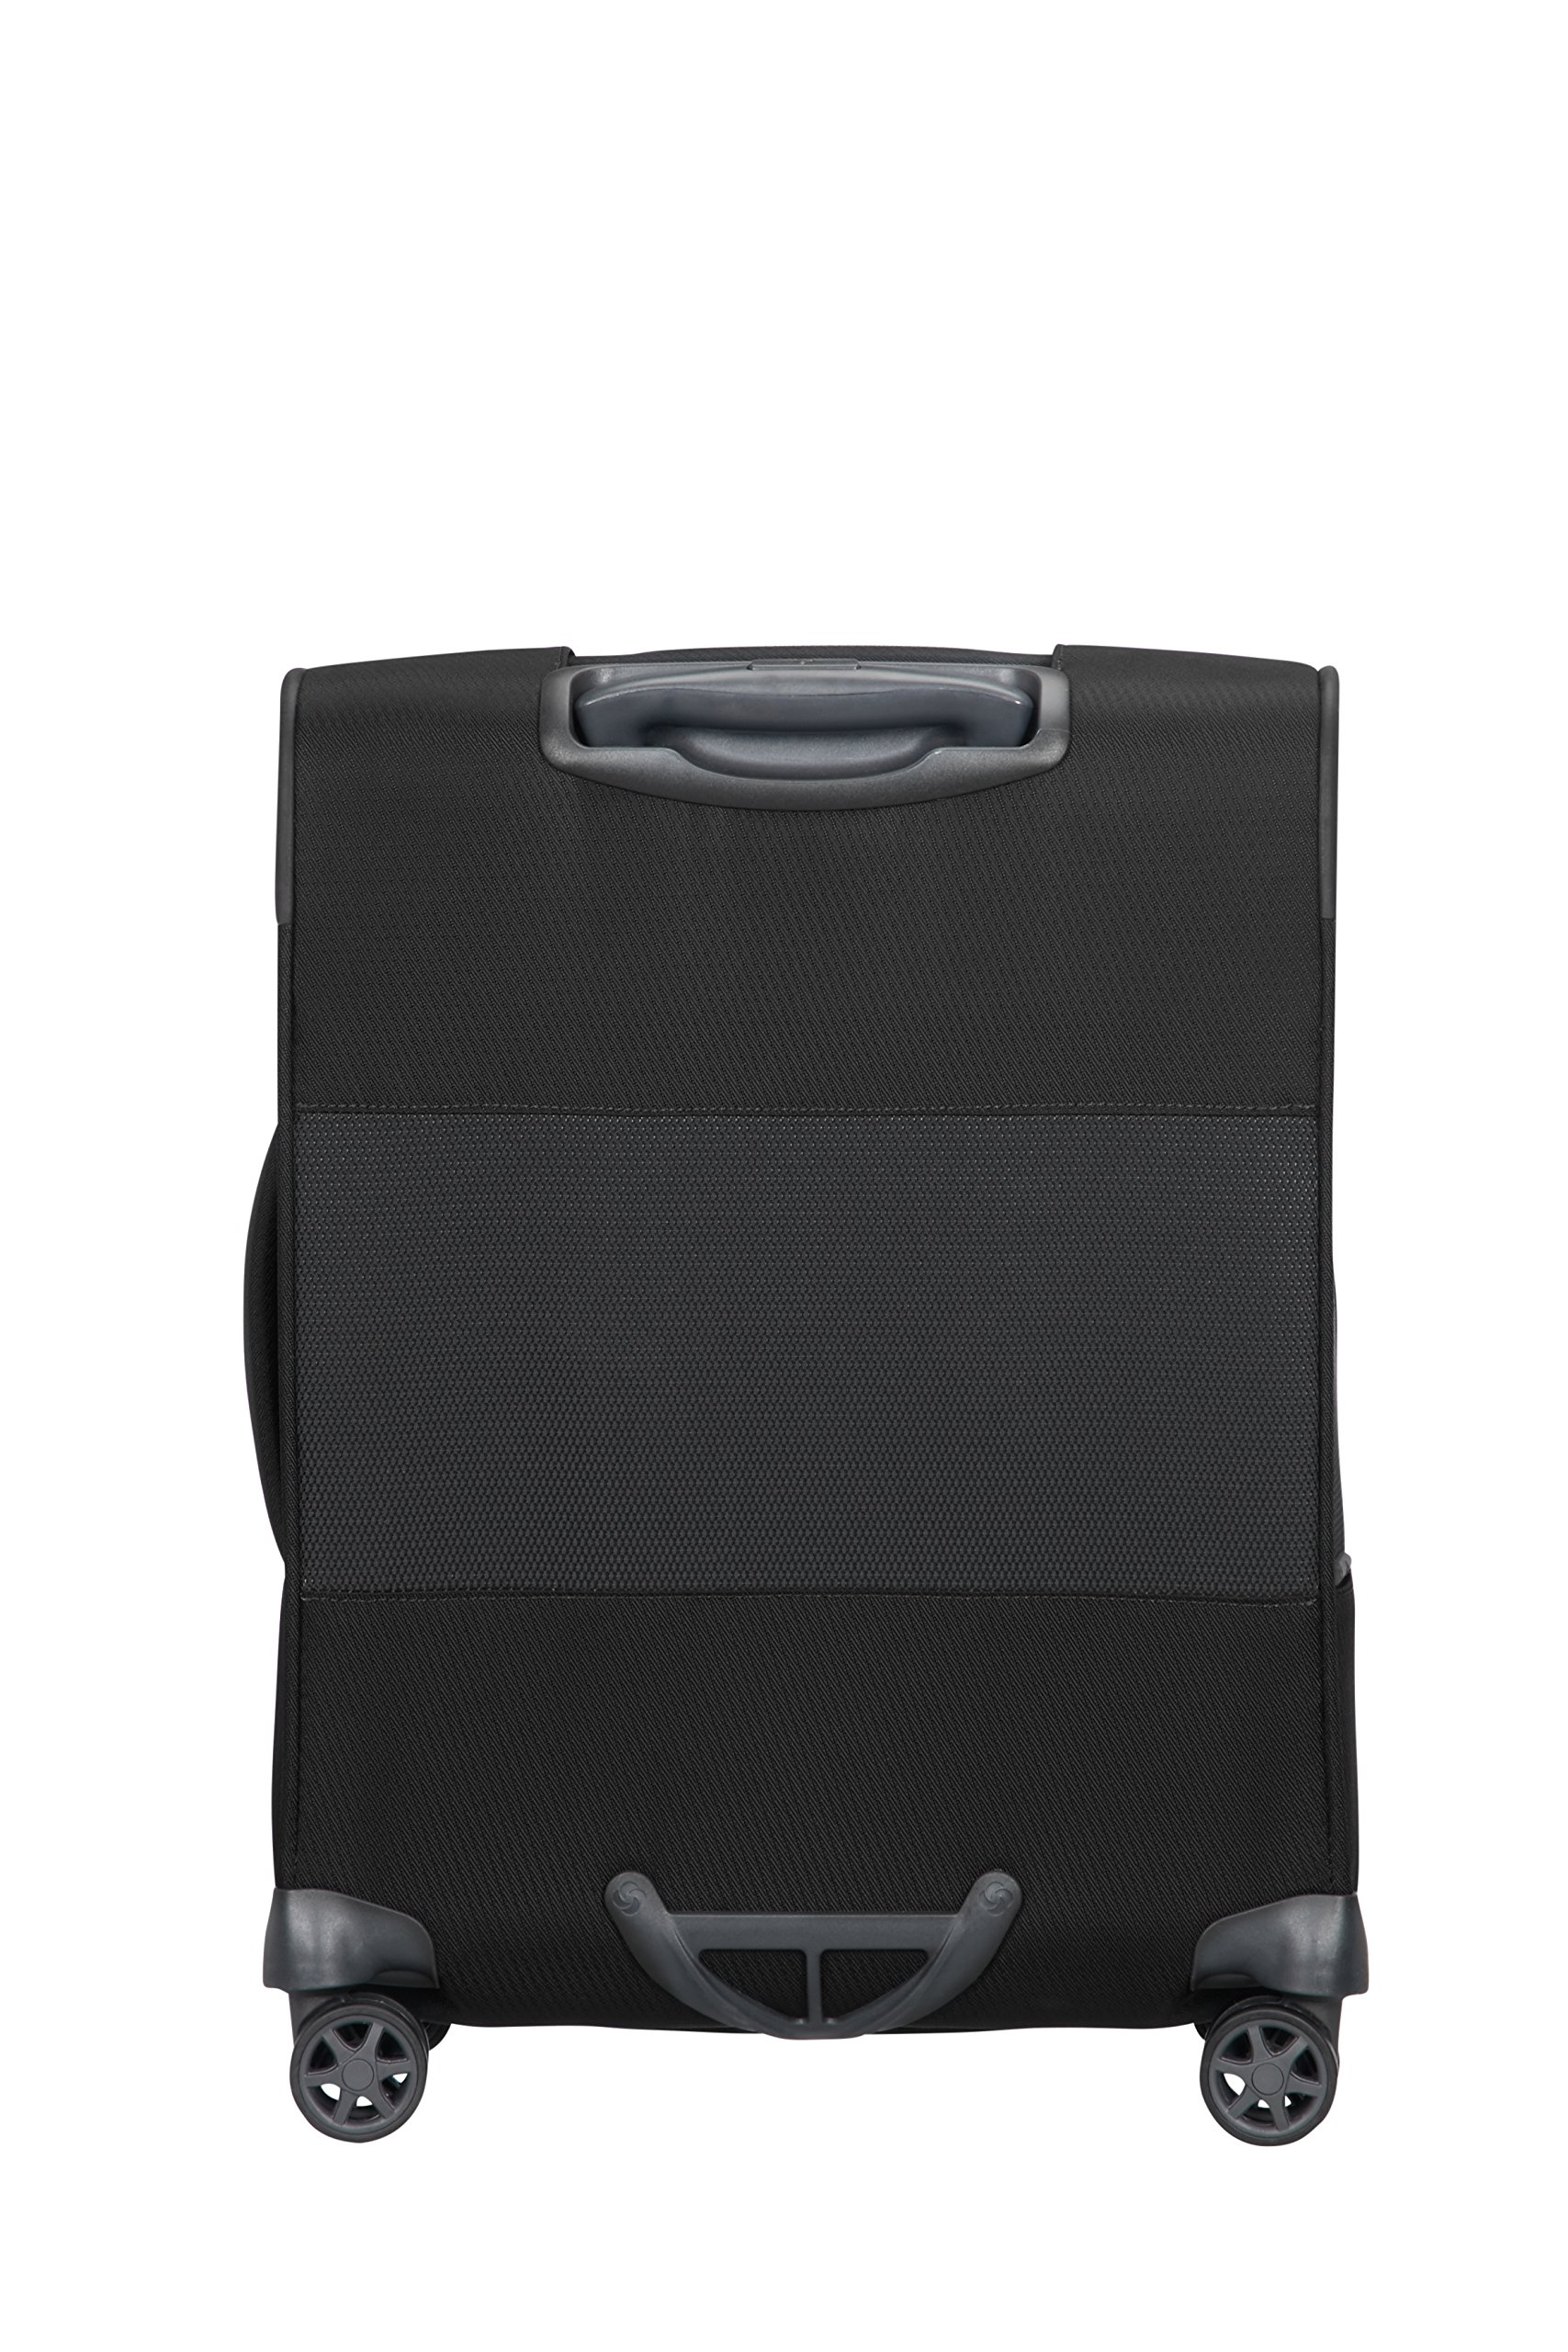 SAMSONITE-Dynamore-Spinner-Length-40cm